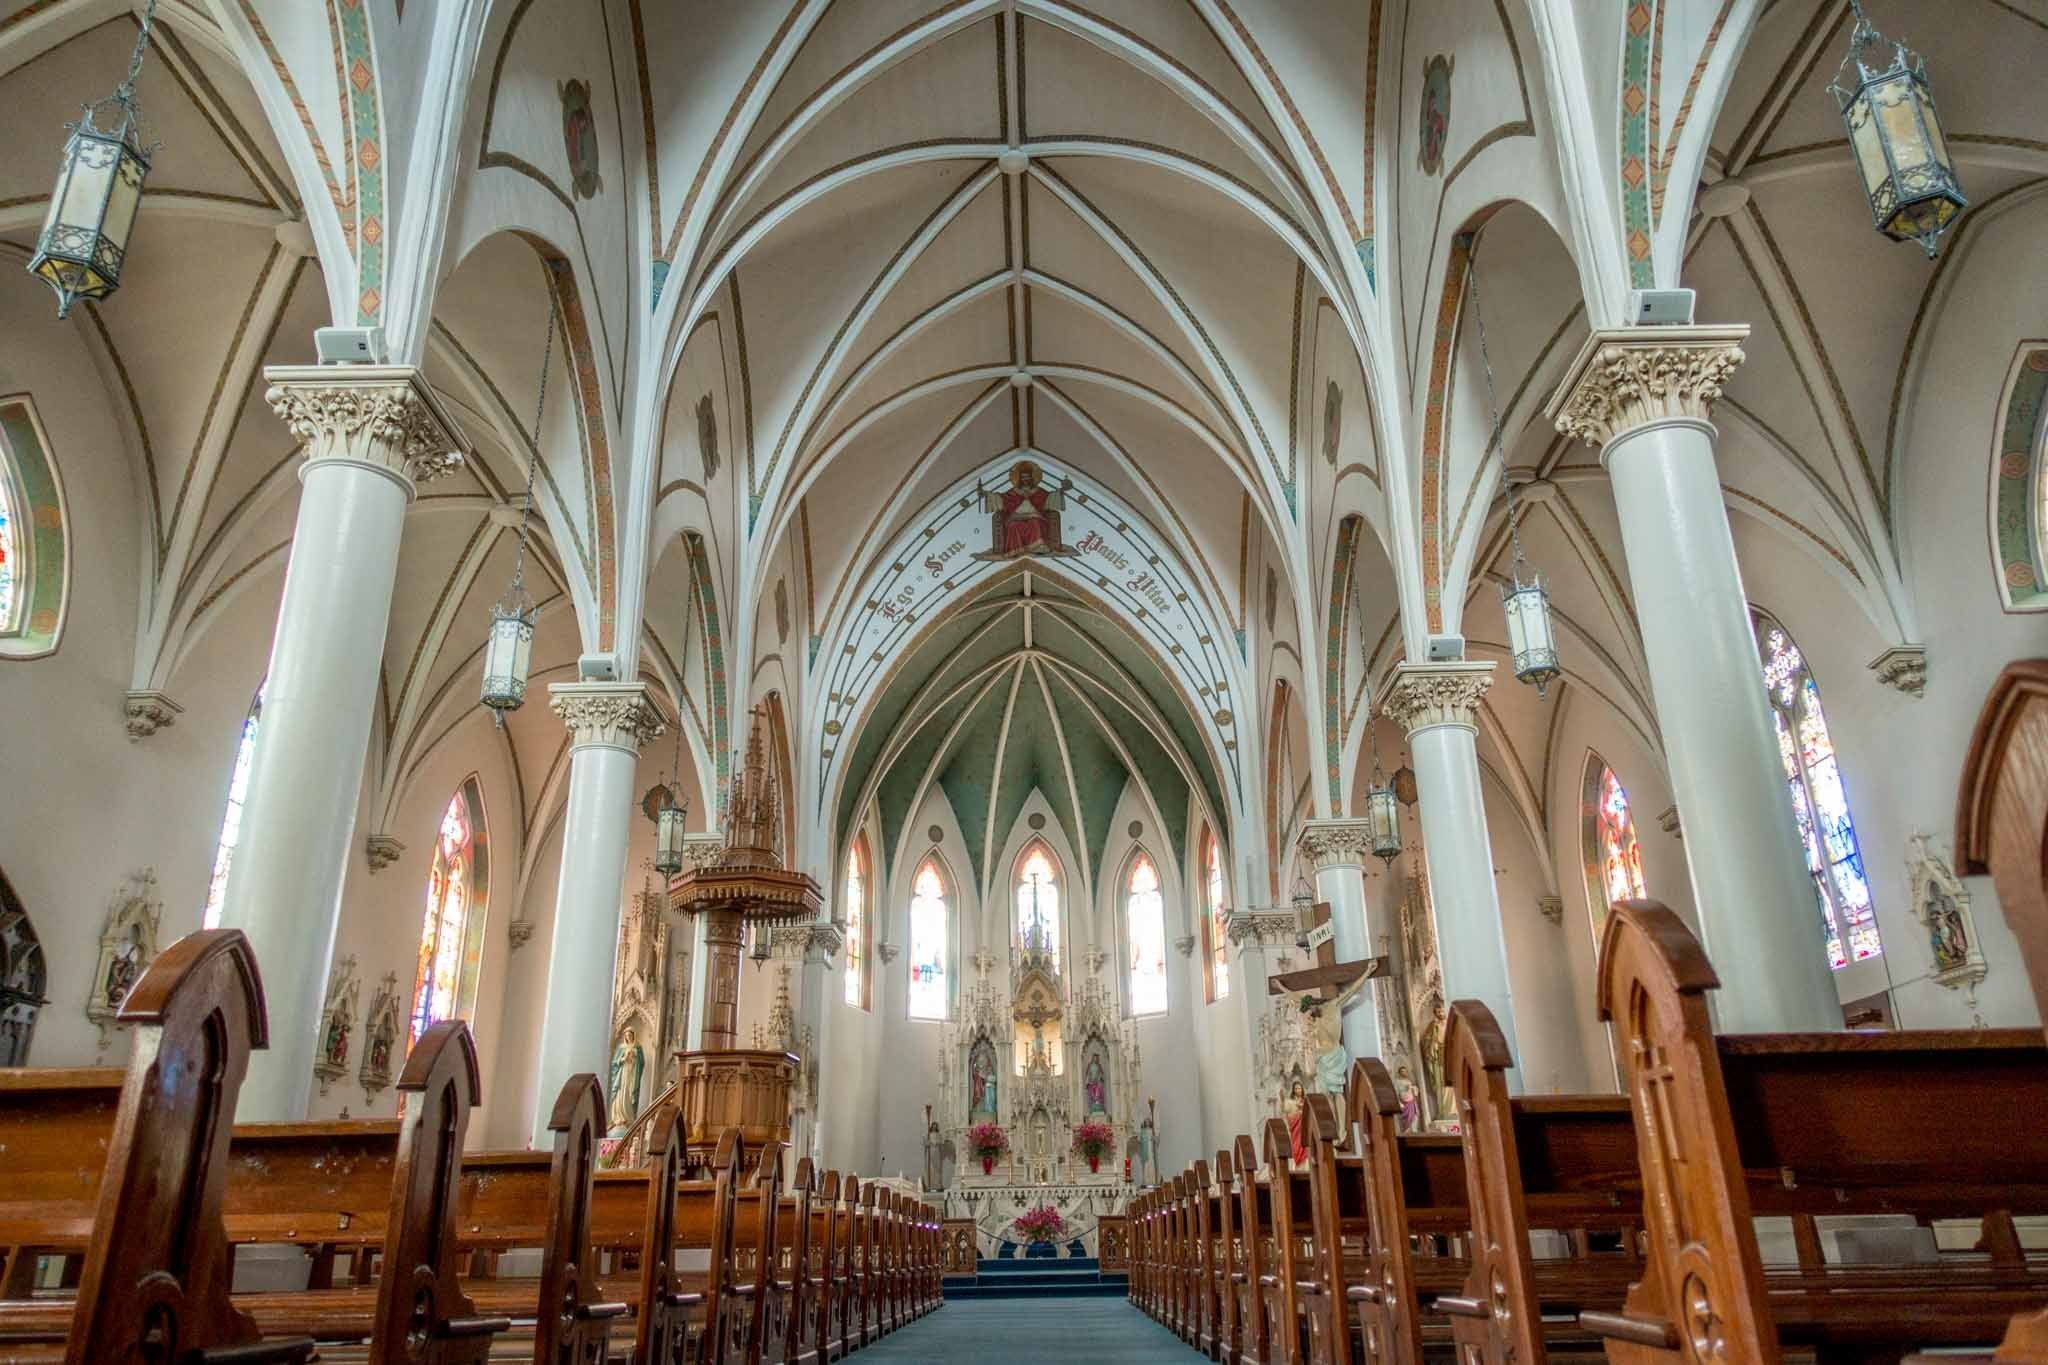 St. Mary's Church is one of the most unique Fredericksburg Texas points of interest